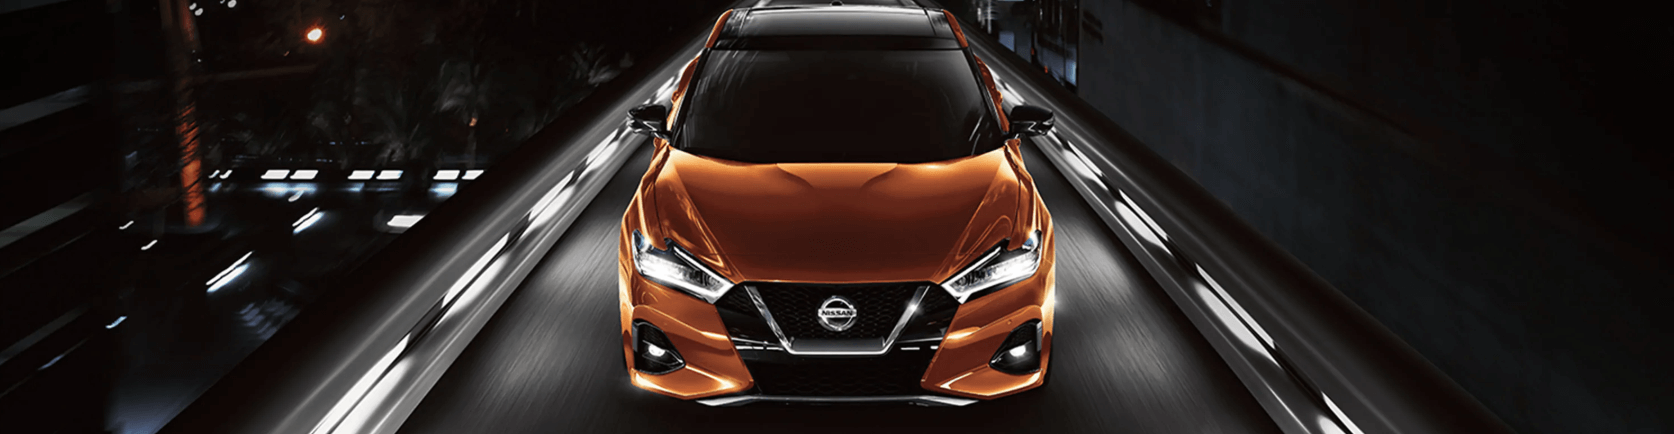 2019 Nissan Maxima vs Competition | M'Lady Nissan